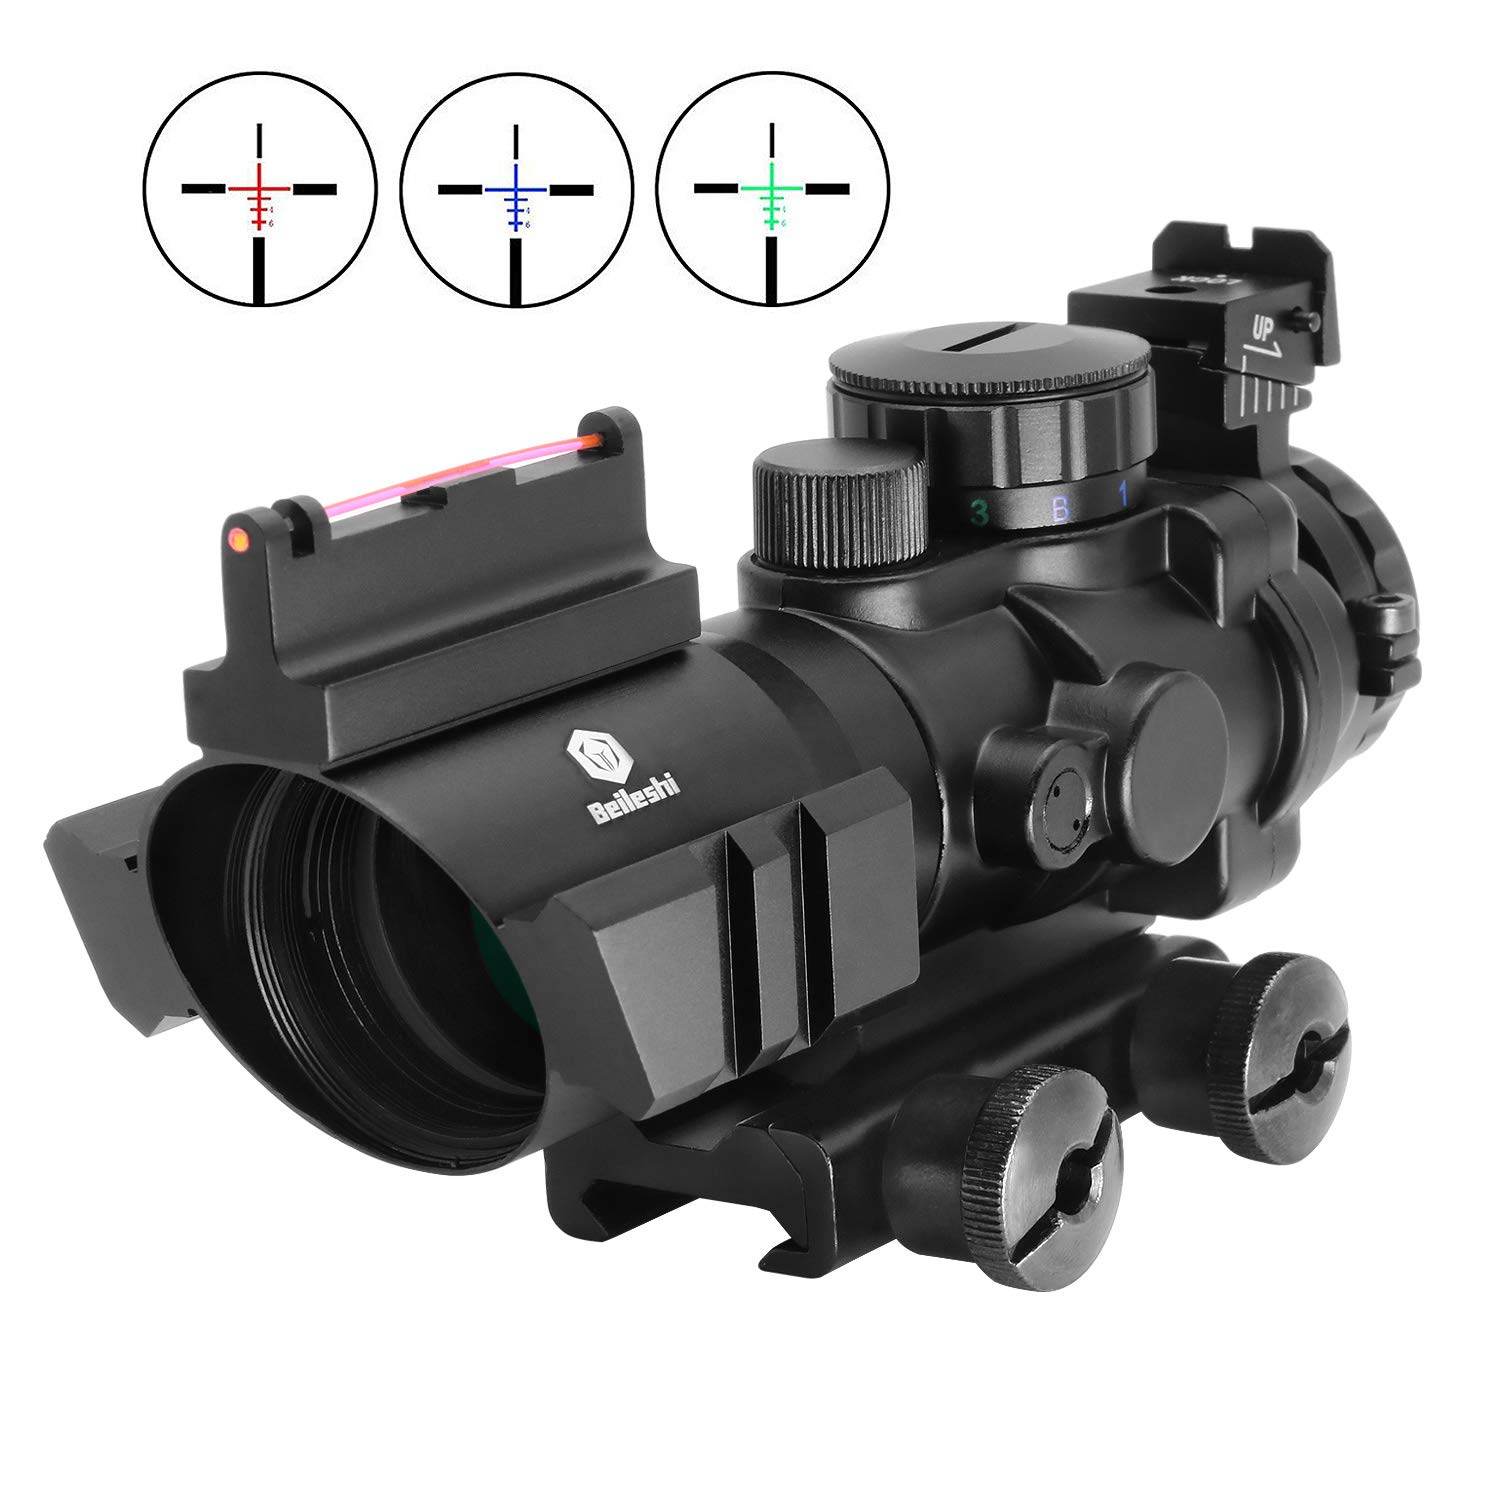 Beileshi Rifle Scope 4x32 Red/Green/Blue Triple Illuminated Rapid Range Reticle Scope with Top Fiber Optic Sight and Weaver Slots by Beileshi